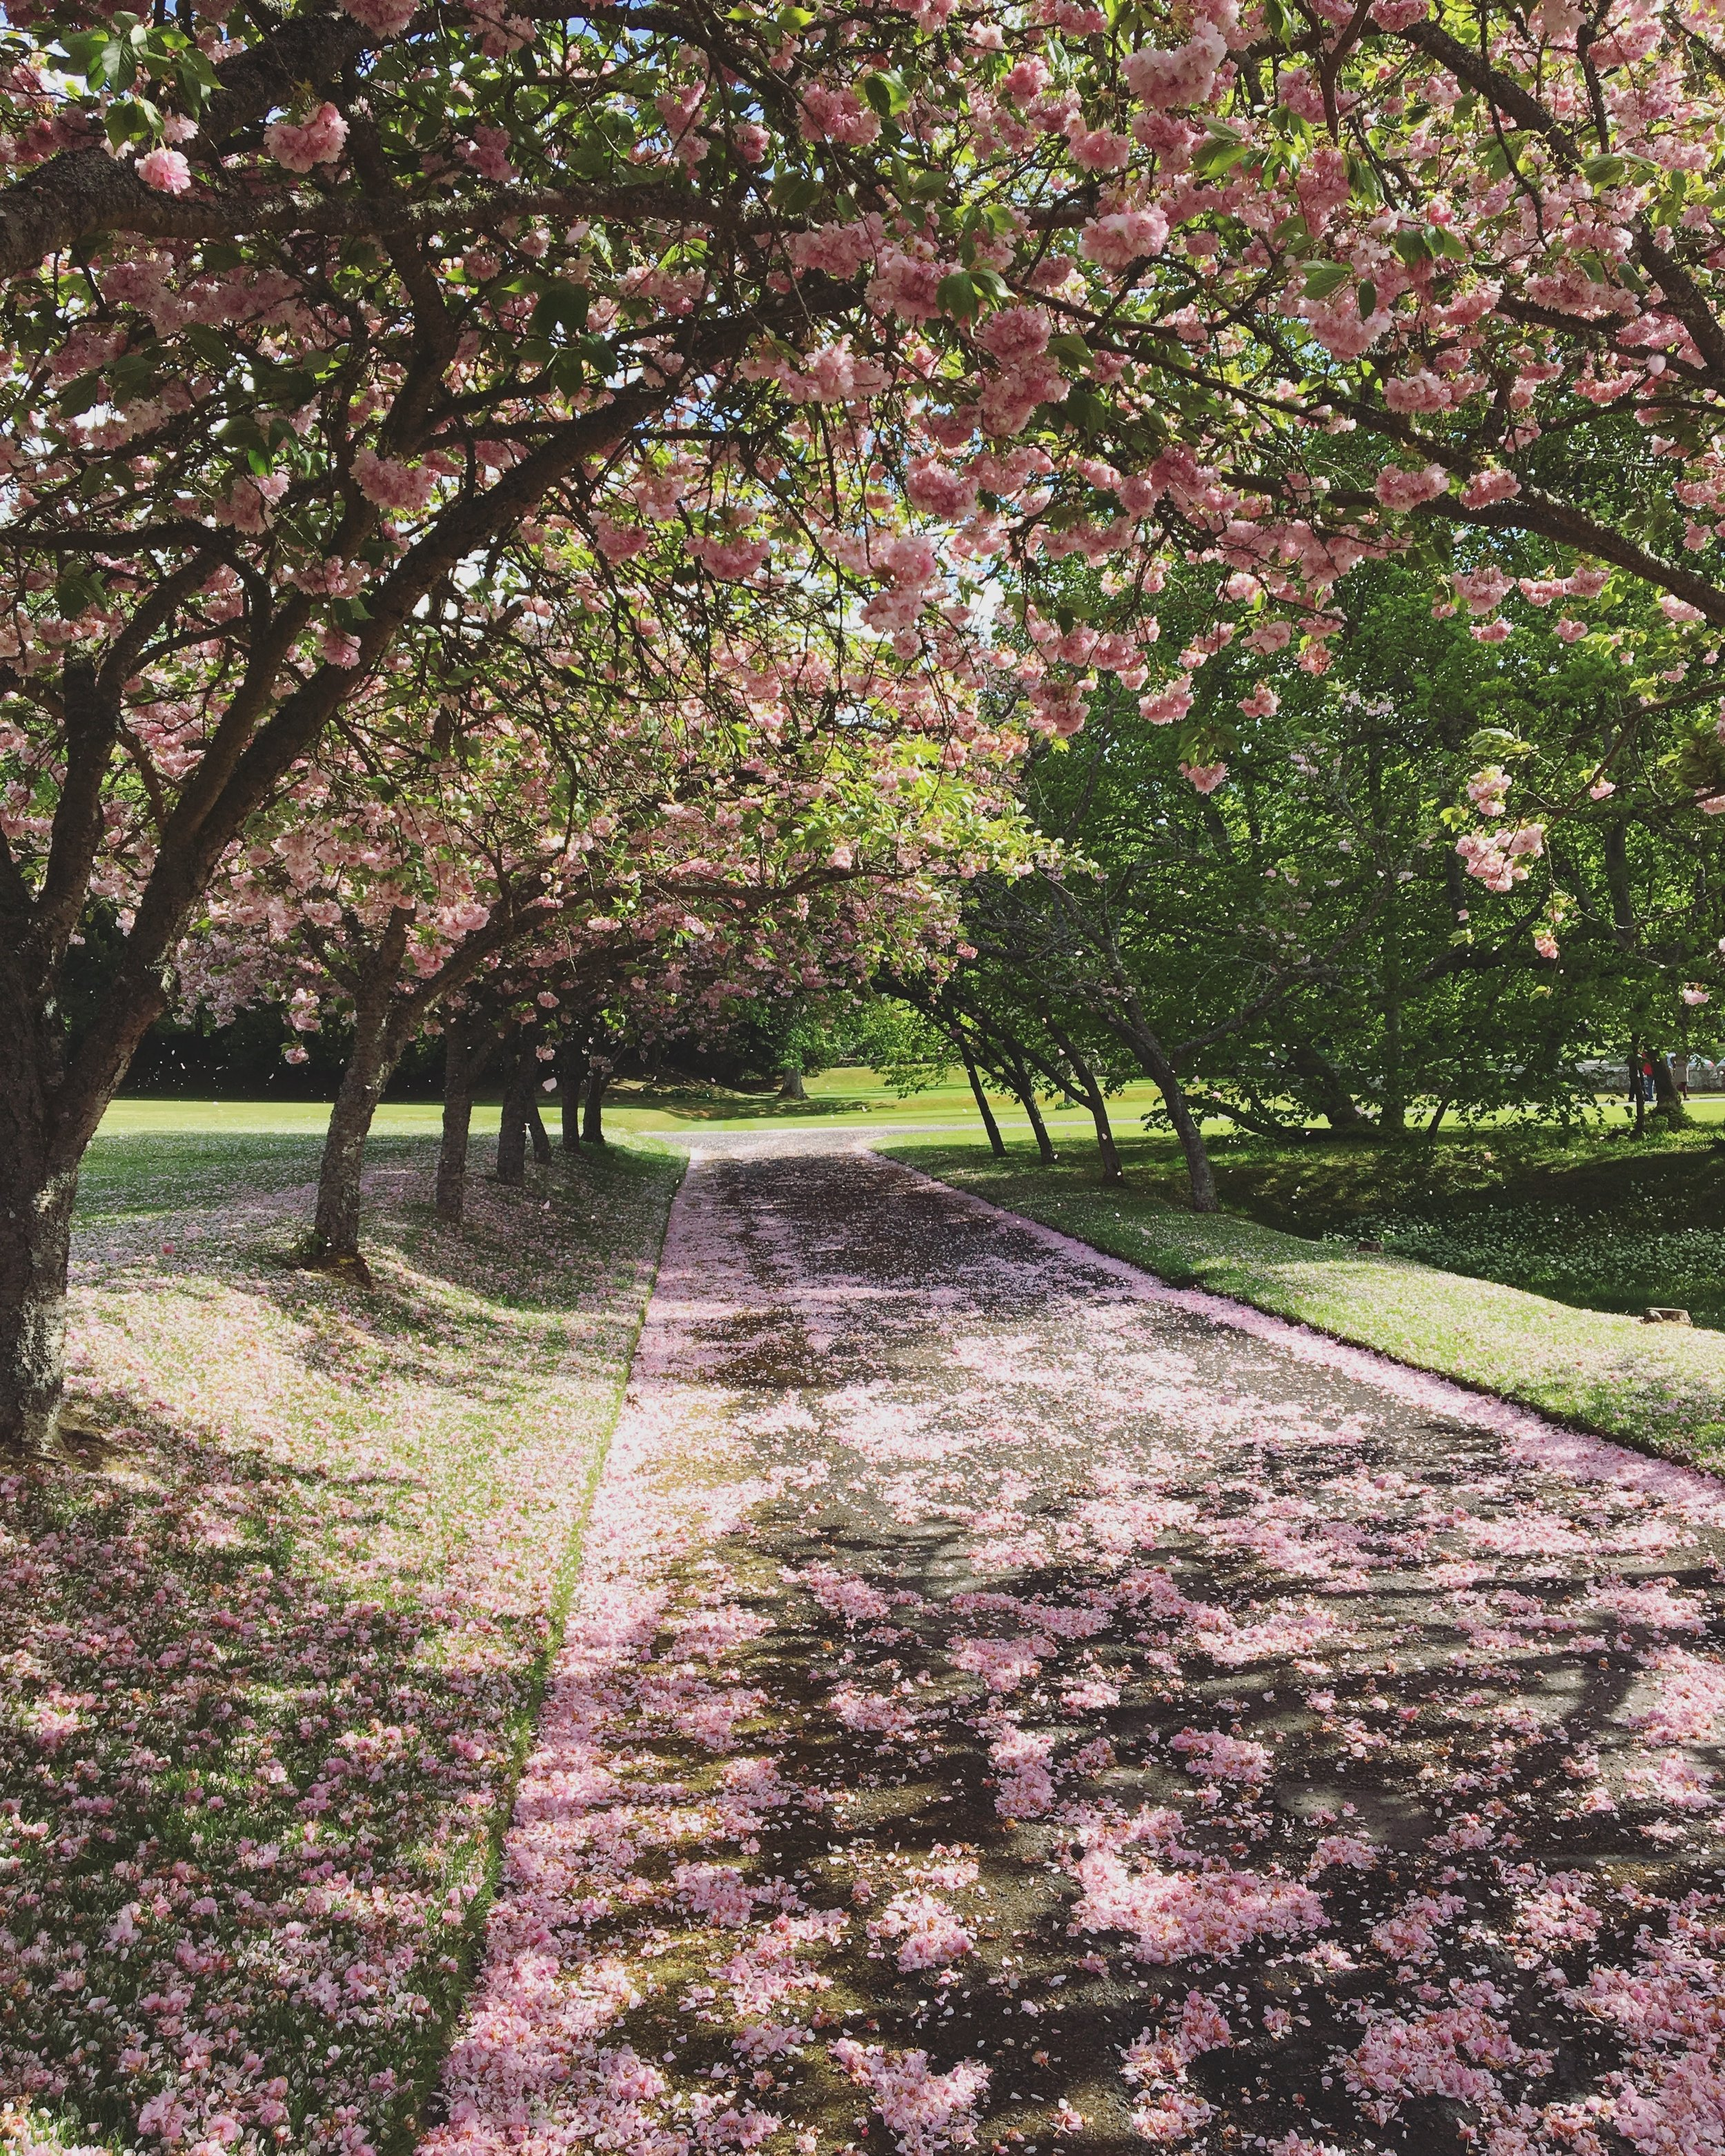 The blossoming trees at Scone Palace.